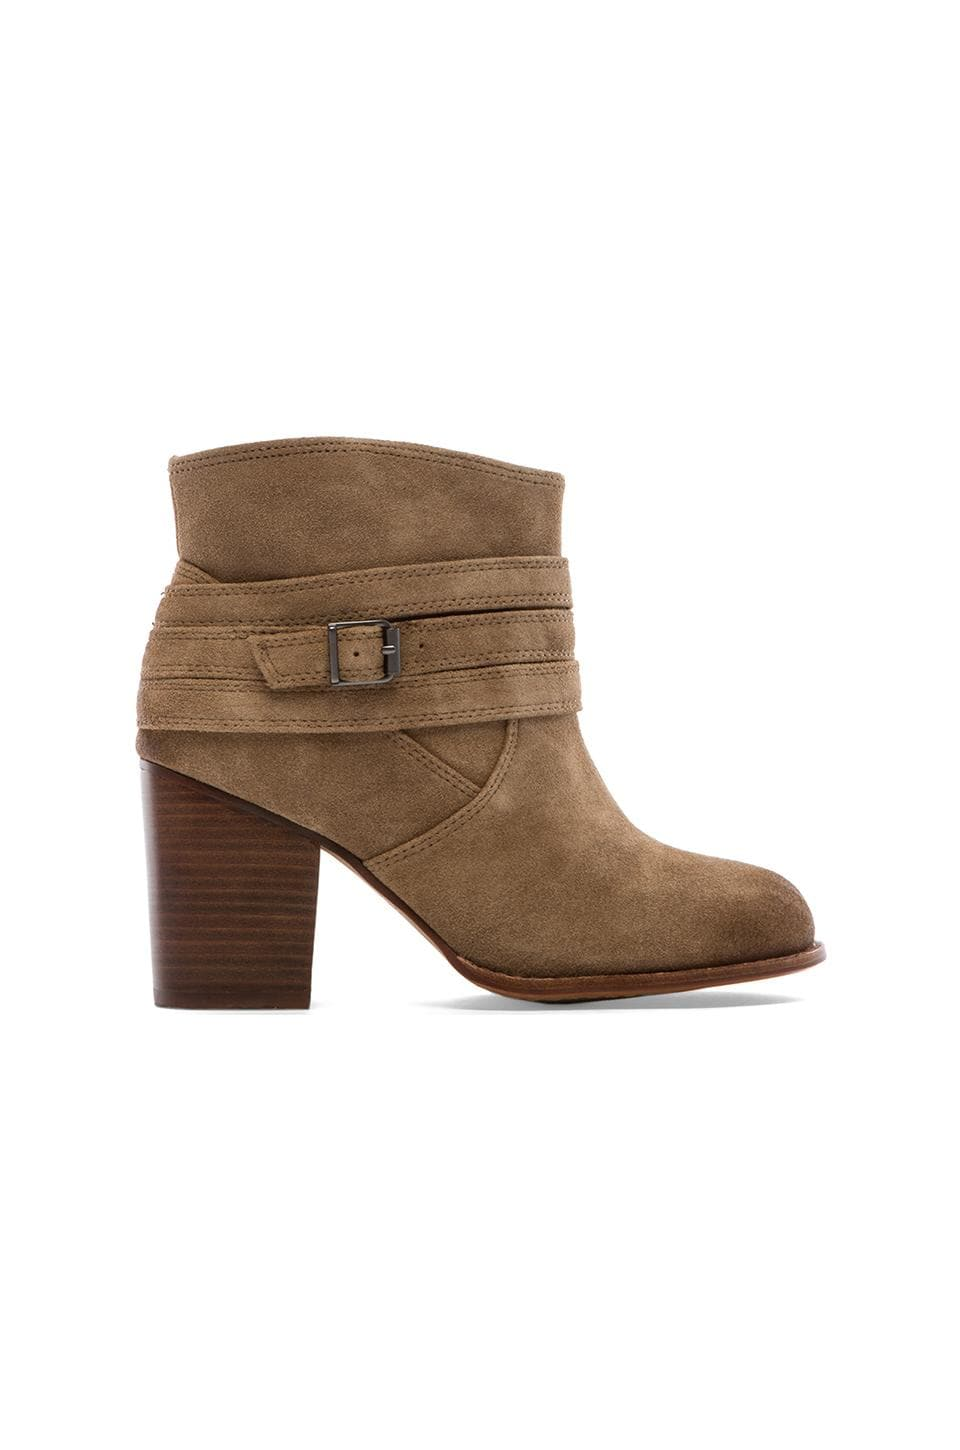 Splendid Laventa Booties in Latte